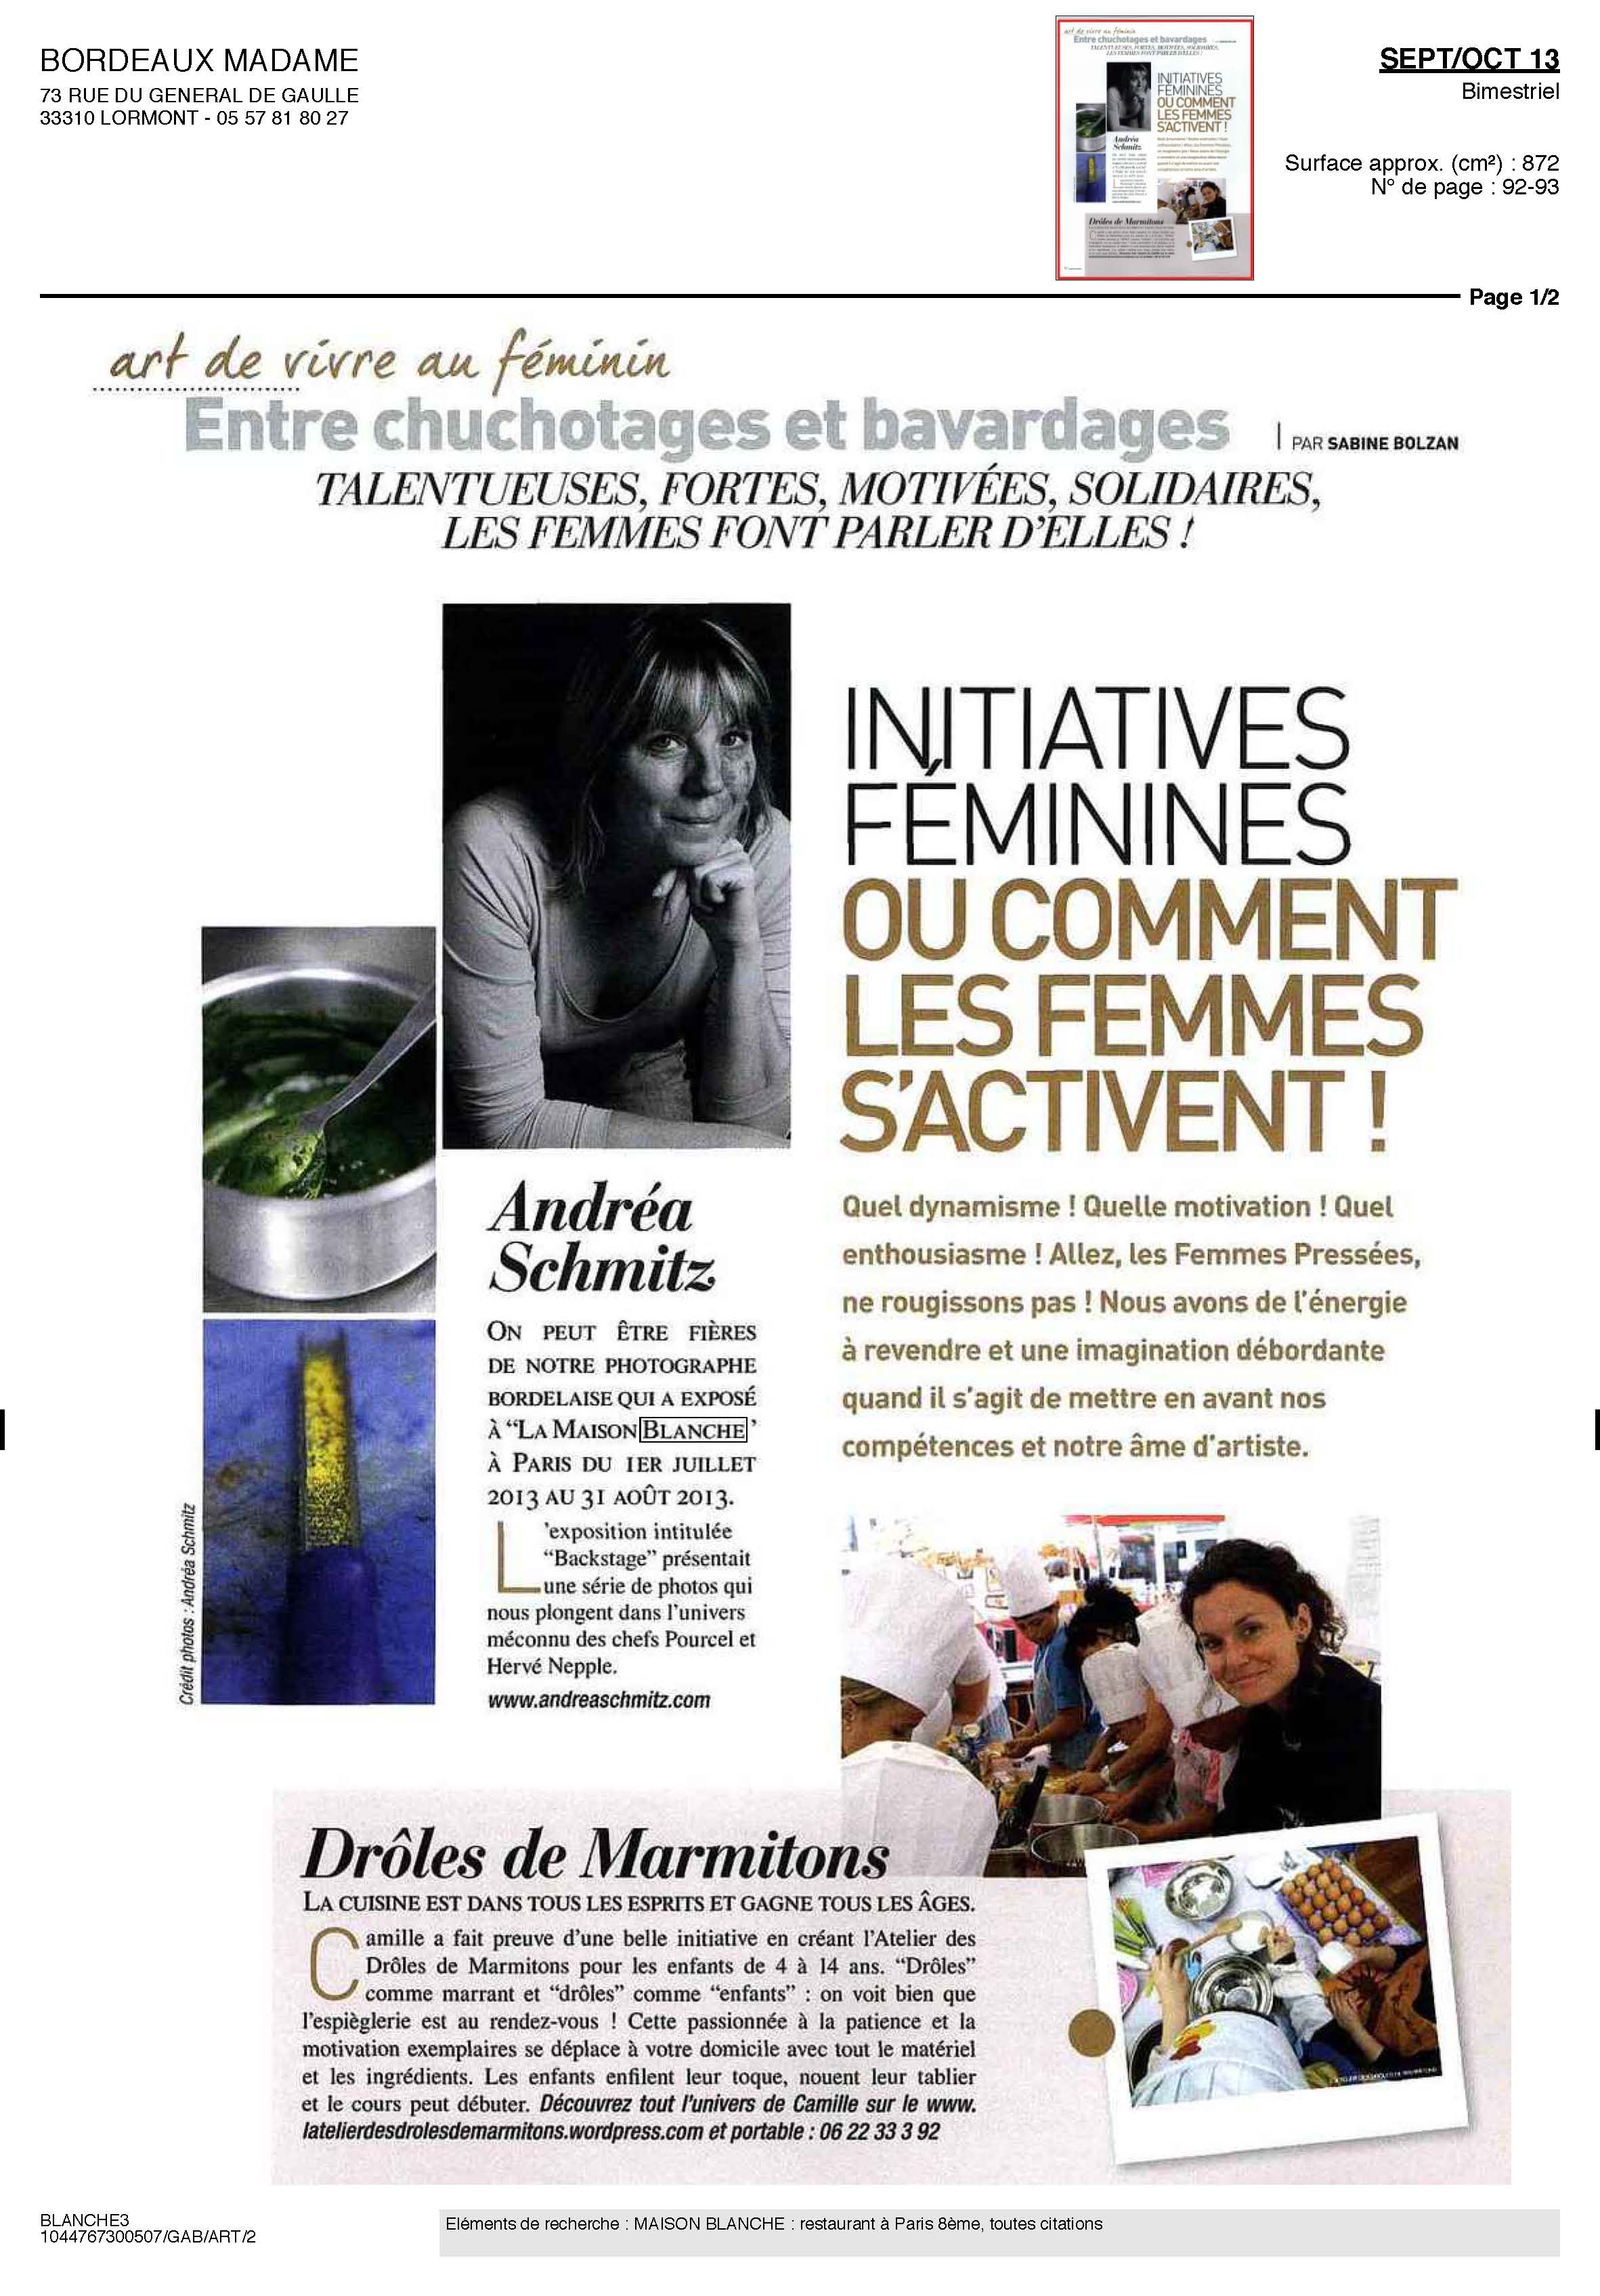 BORDEAUX_MADAME Octobre - Septembre 2013_Page_1